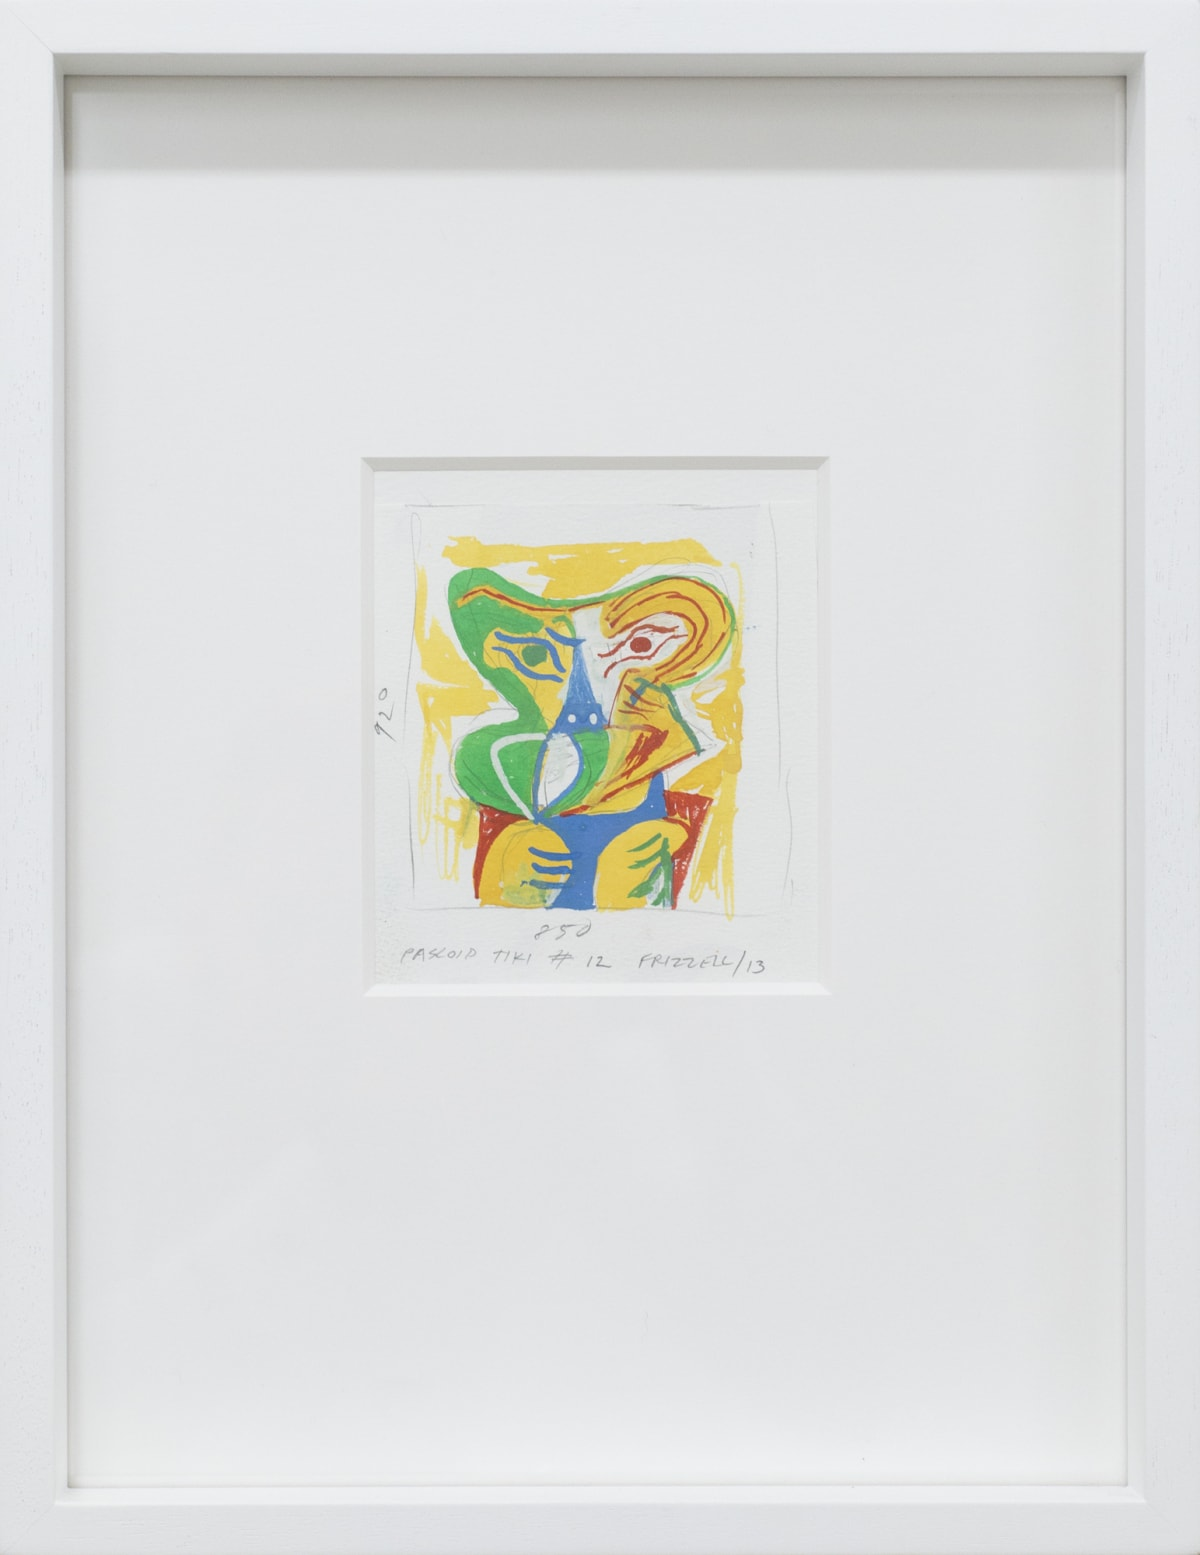 Dick FRIZZELL Pascoid Tiki #12 [Yellow], 2013 Gouache and pencil on paper 4 x 4.1 in 10.3 x 10.1cm 38 x 29cm (framed)